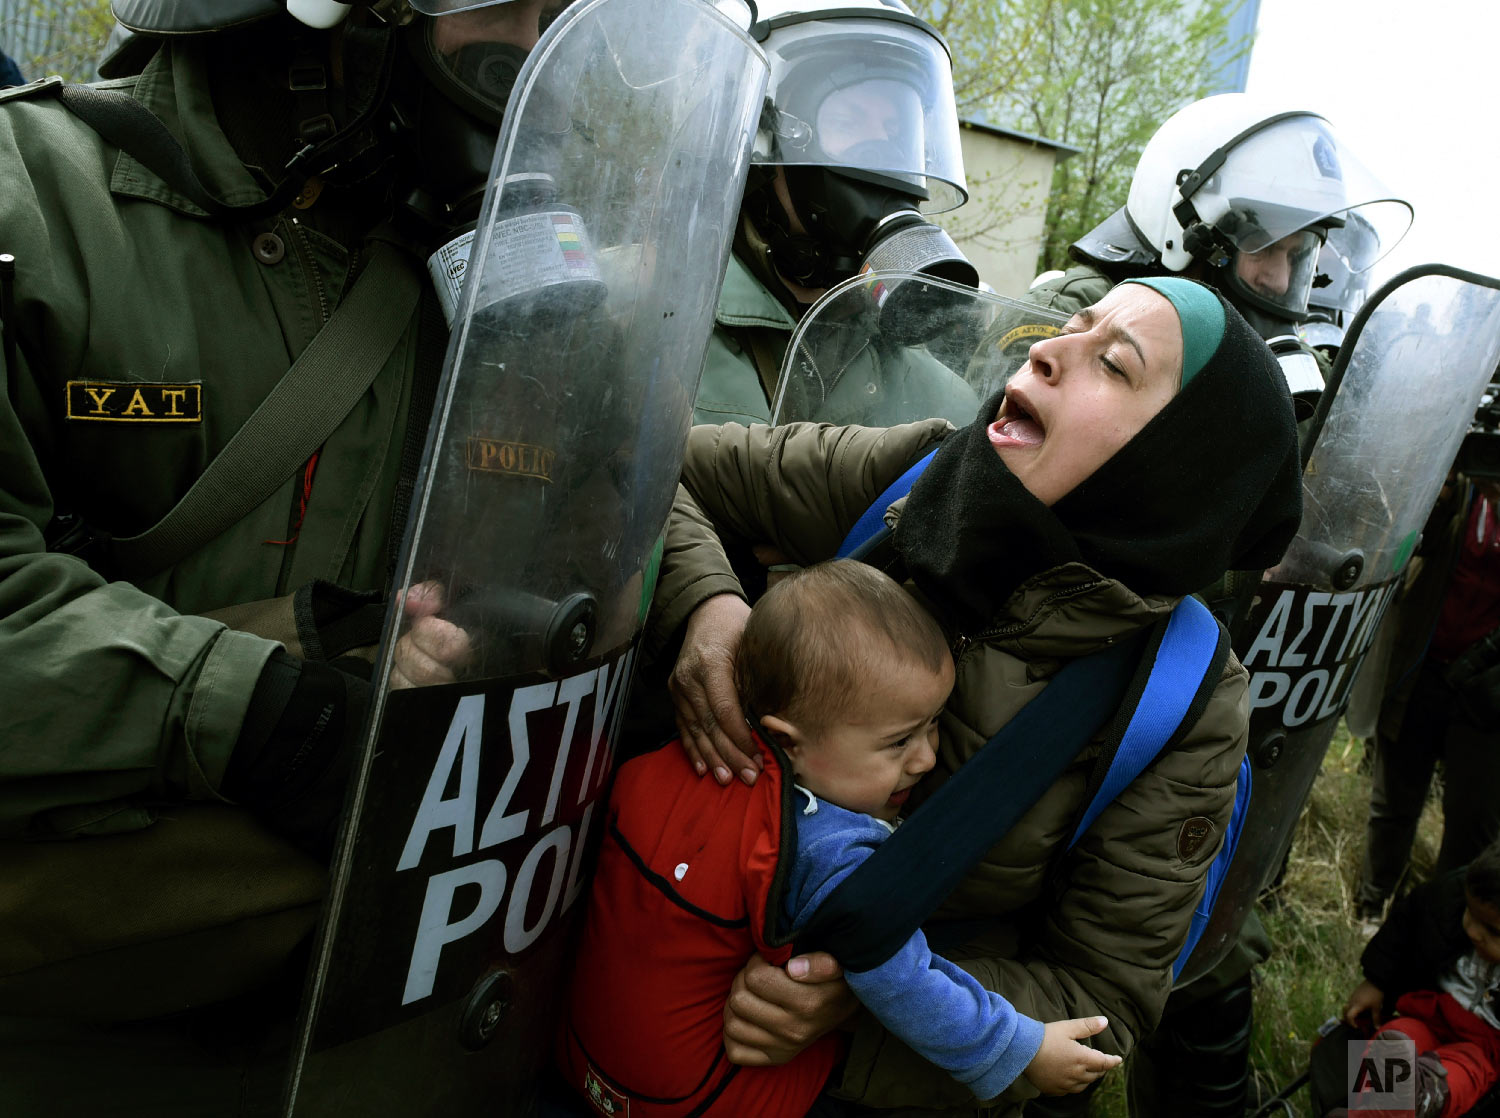 A migrant woman with a child pushing with riot police outside a refugee camp in the village of Diavata, west of Thessaloniki, northern Greece, Friday, April 5, 2019. (AP Photo/Giannis Papanikos)